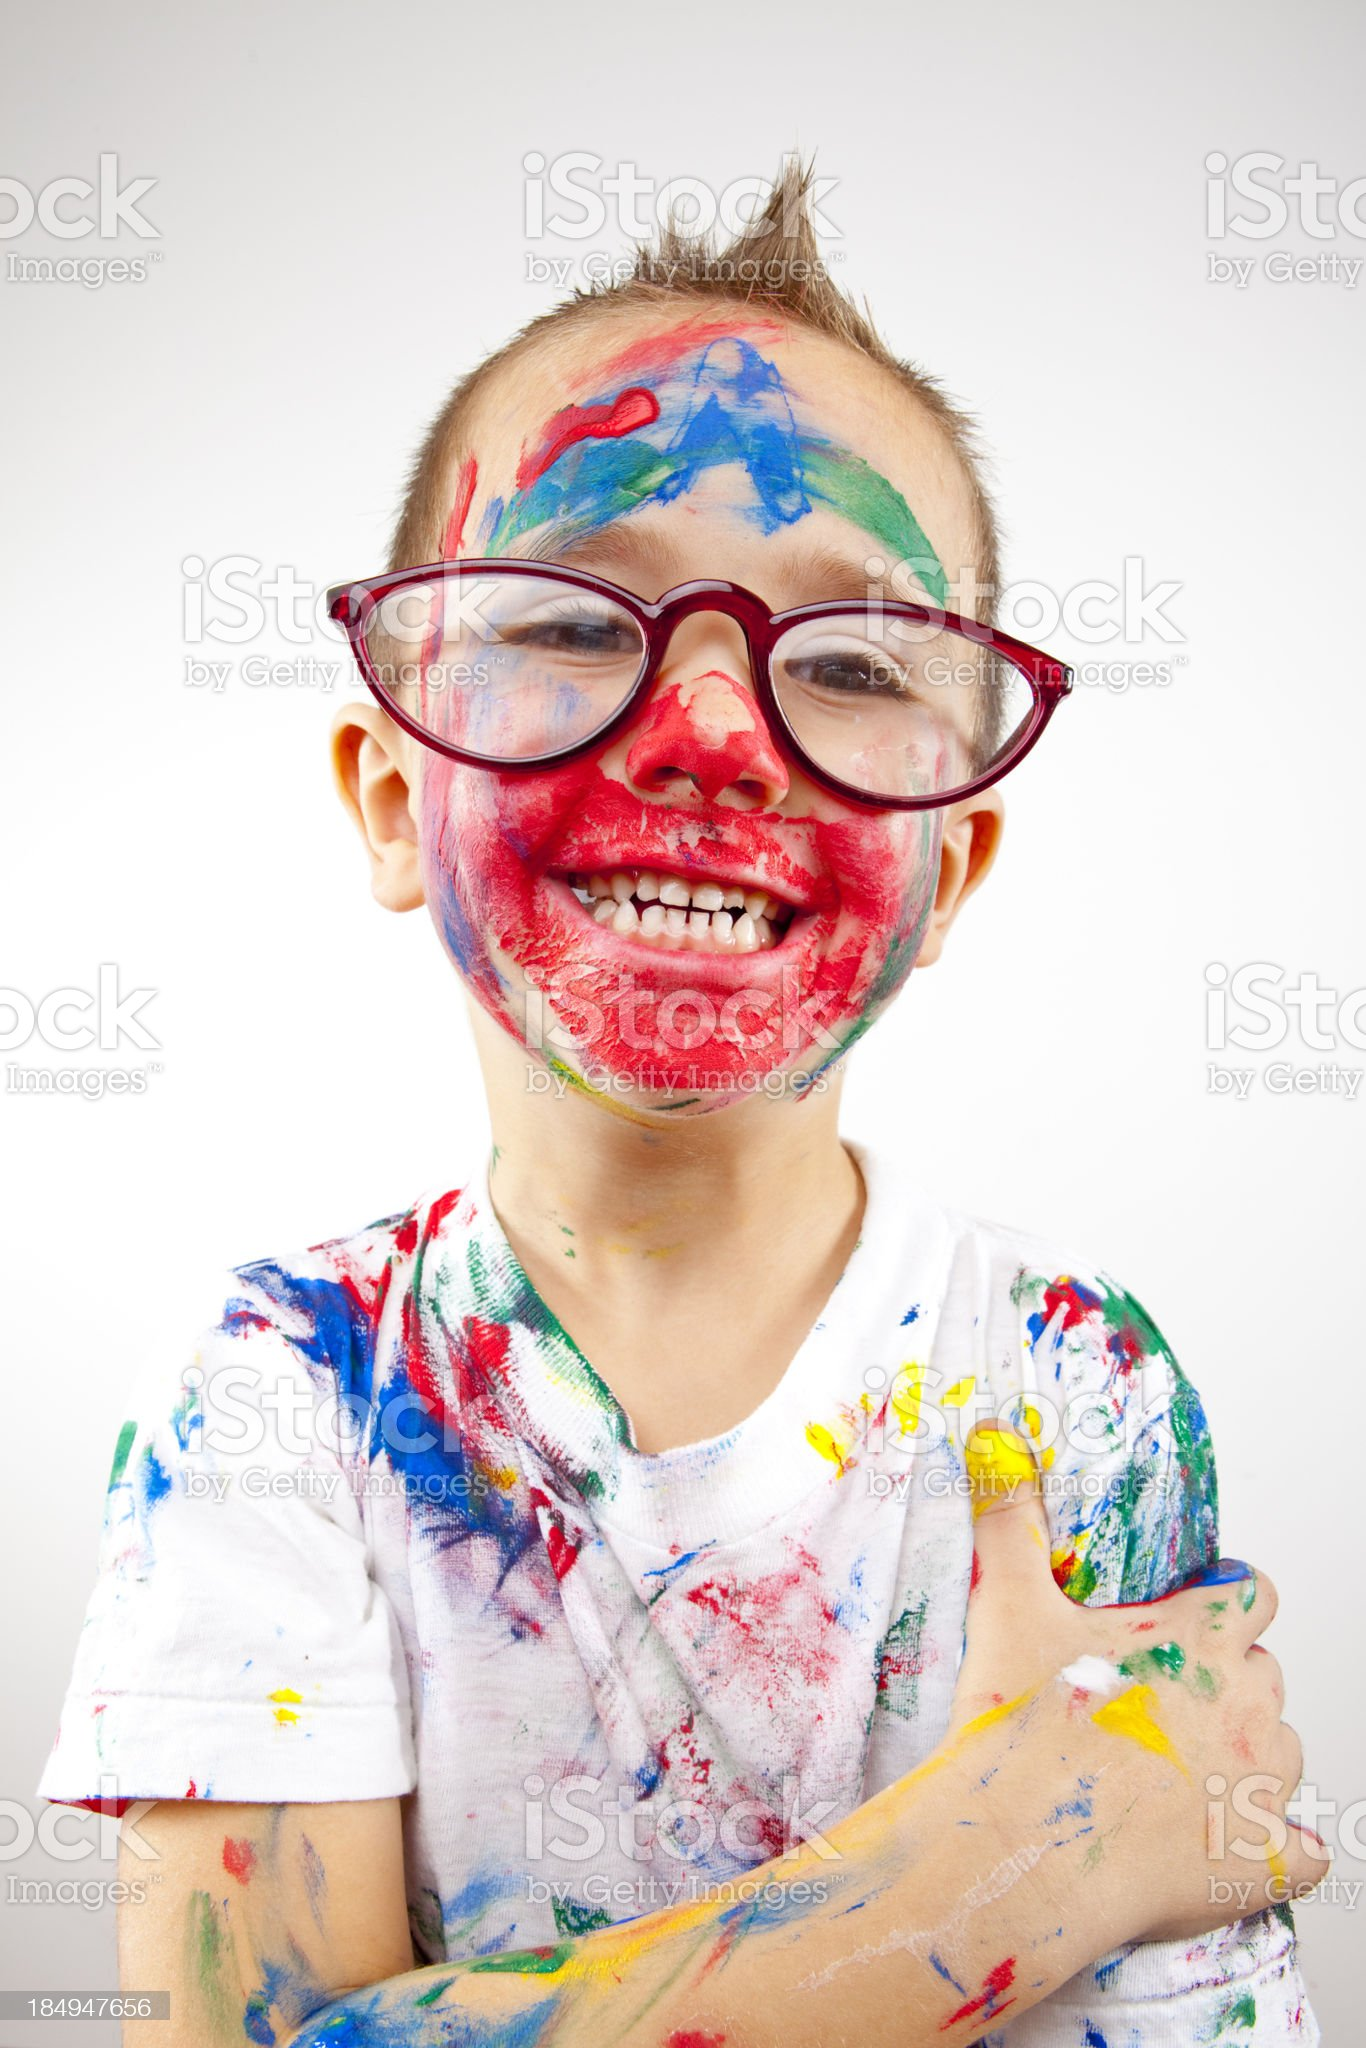 Boy having fun with finger paint royalty-free stock photo